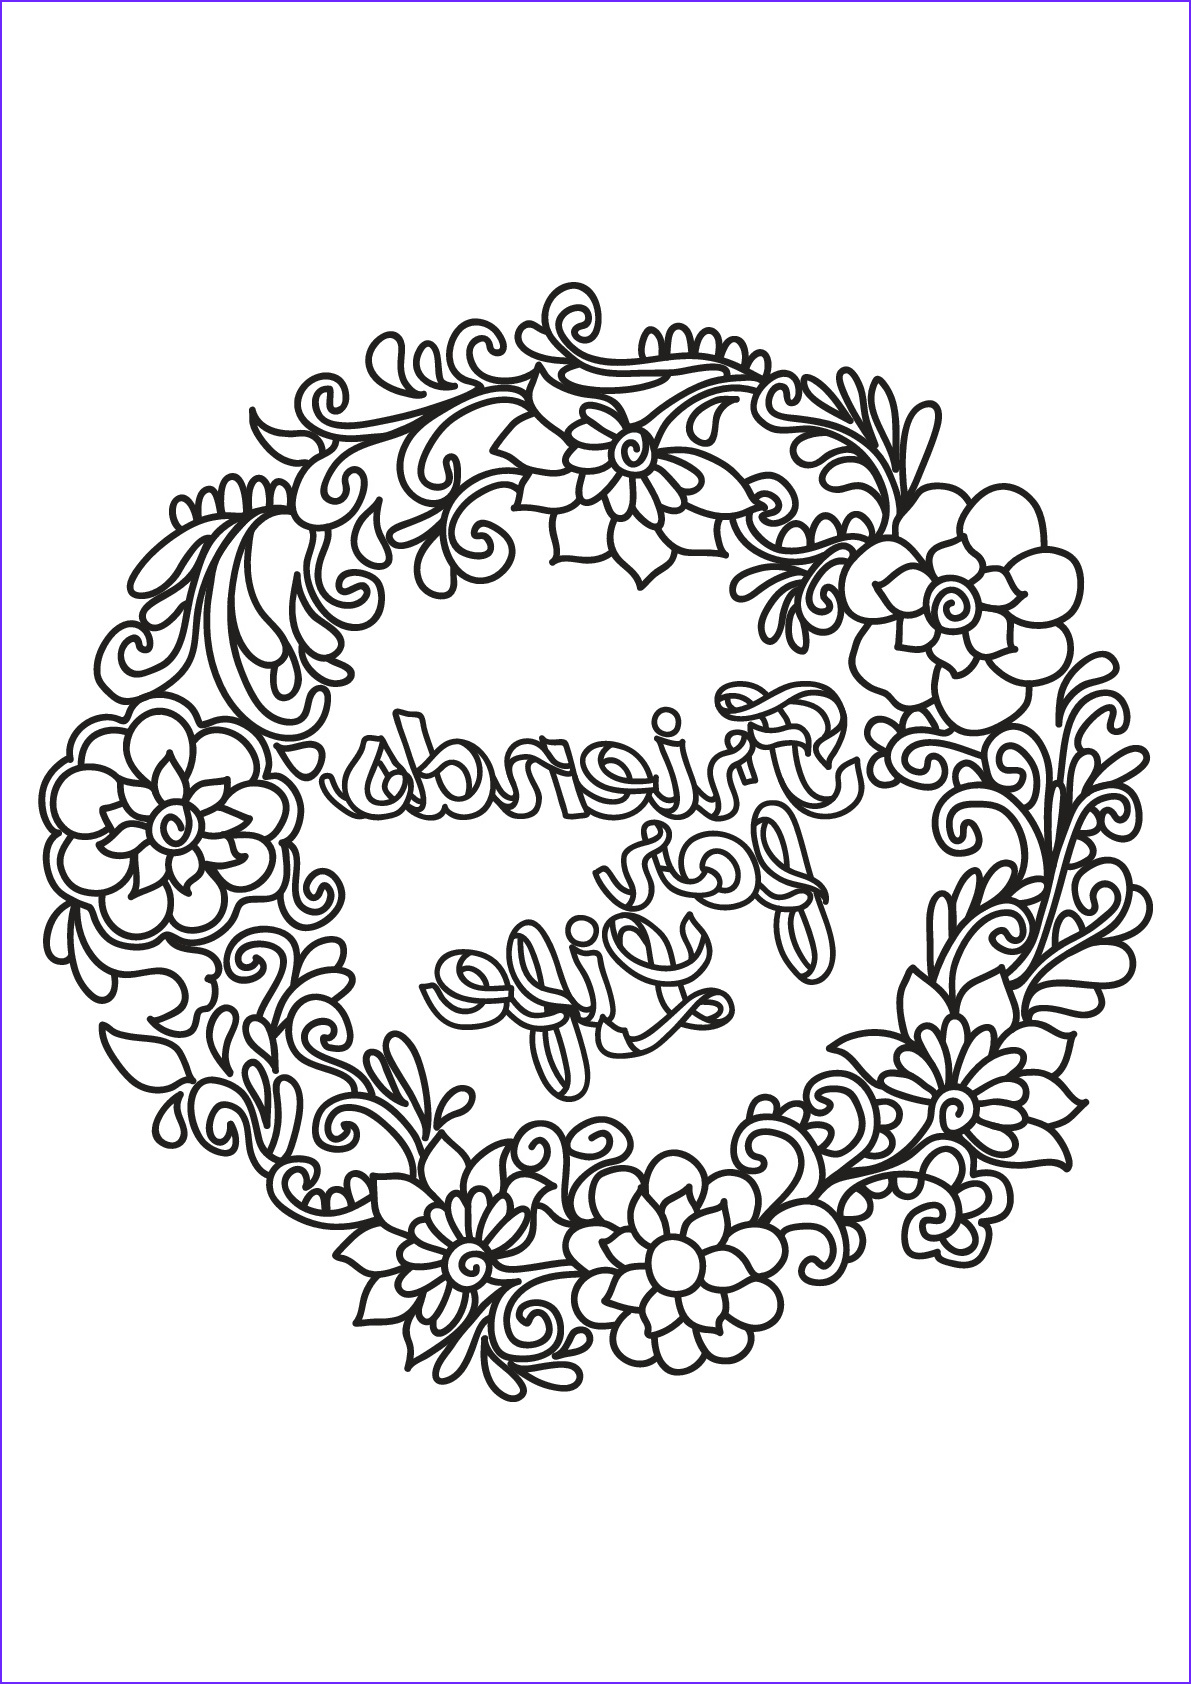 Free Quote Coloring Page Unique Gallery Free Book Quote 8 Positive & Inspiring Quotes Adult